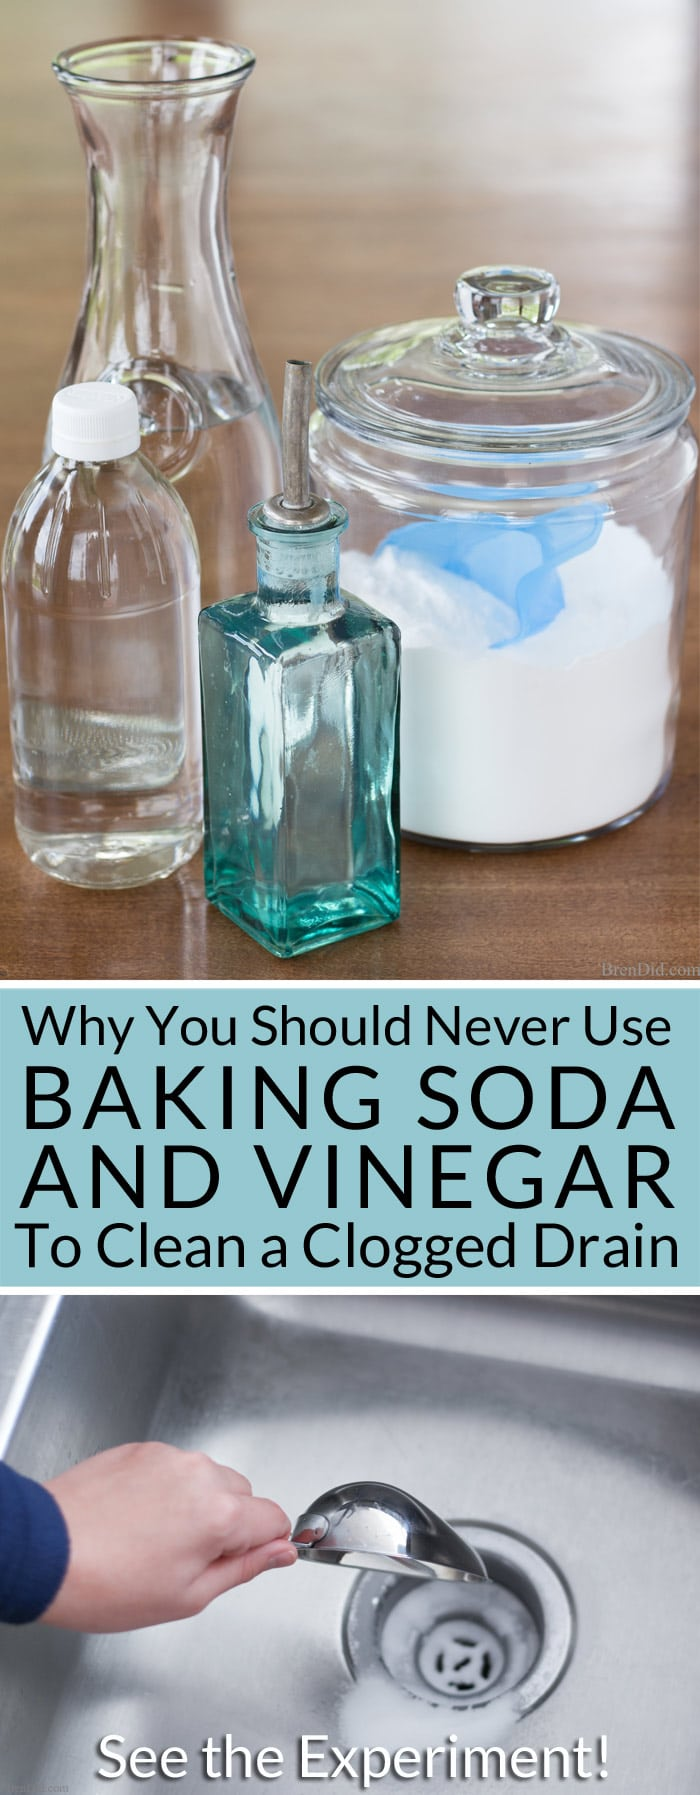 why you should never use baking soda and vinegar to clean clogged drains kitchen sink draining slowly Want to naturally unclog a sink or clean a slow moving drain Learn why you